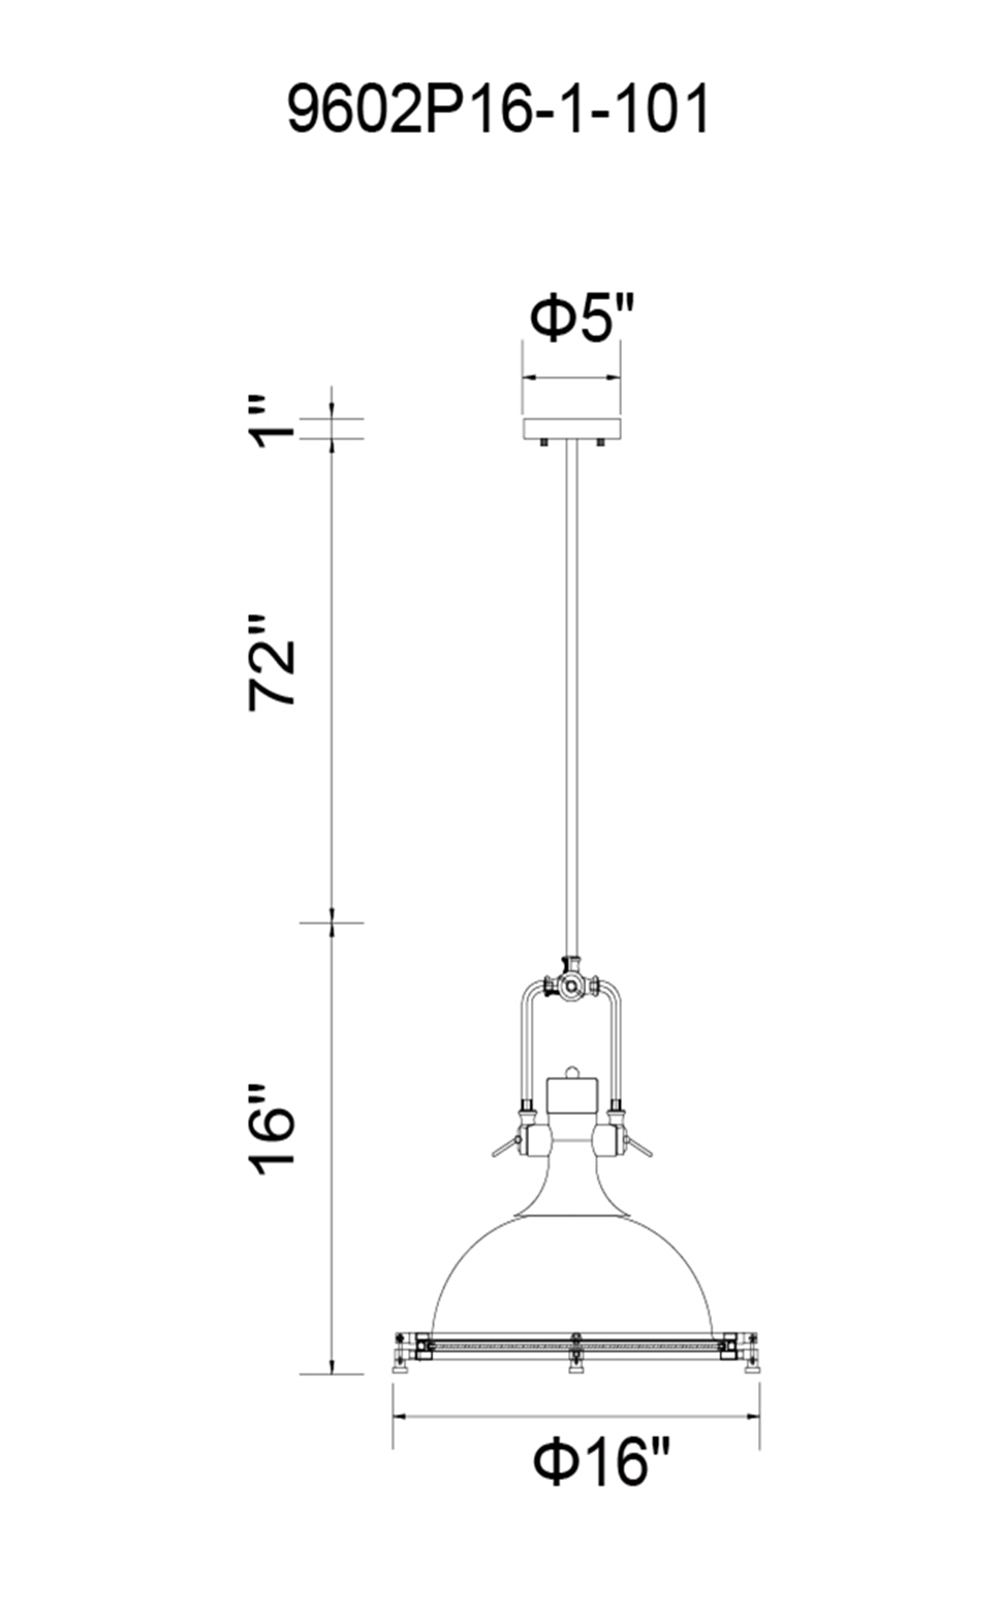 CWI Lighting Show 1 Light Down Pendant With Black Finish Model: 9602P16-1-101 Line Drawing